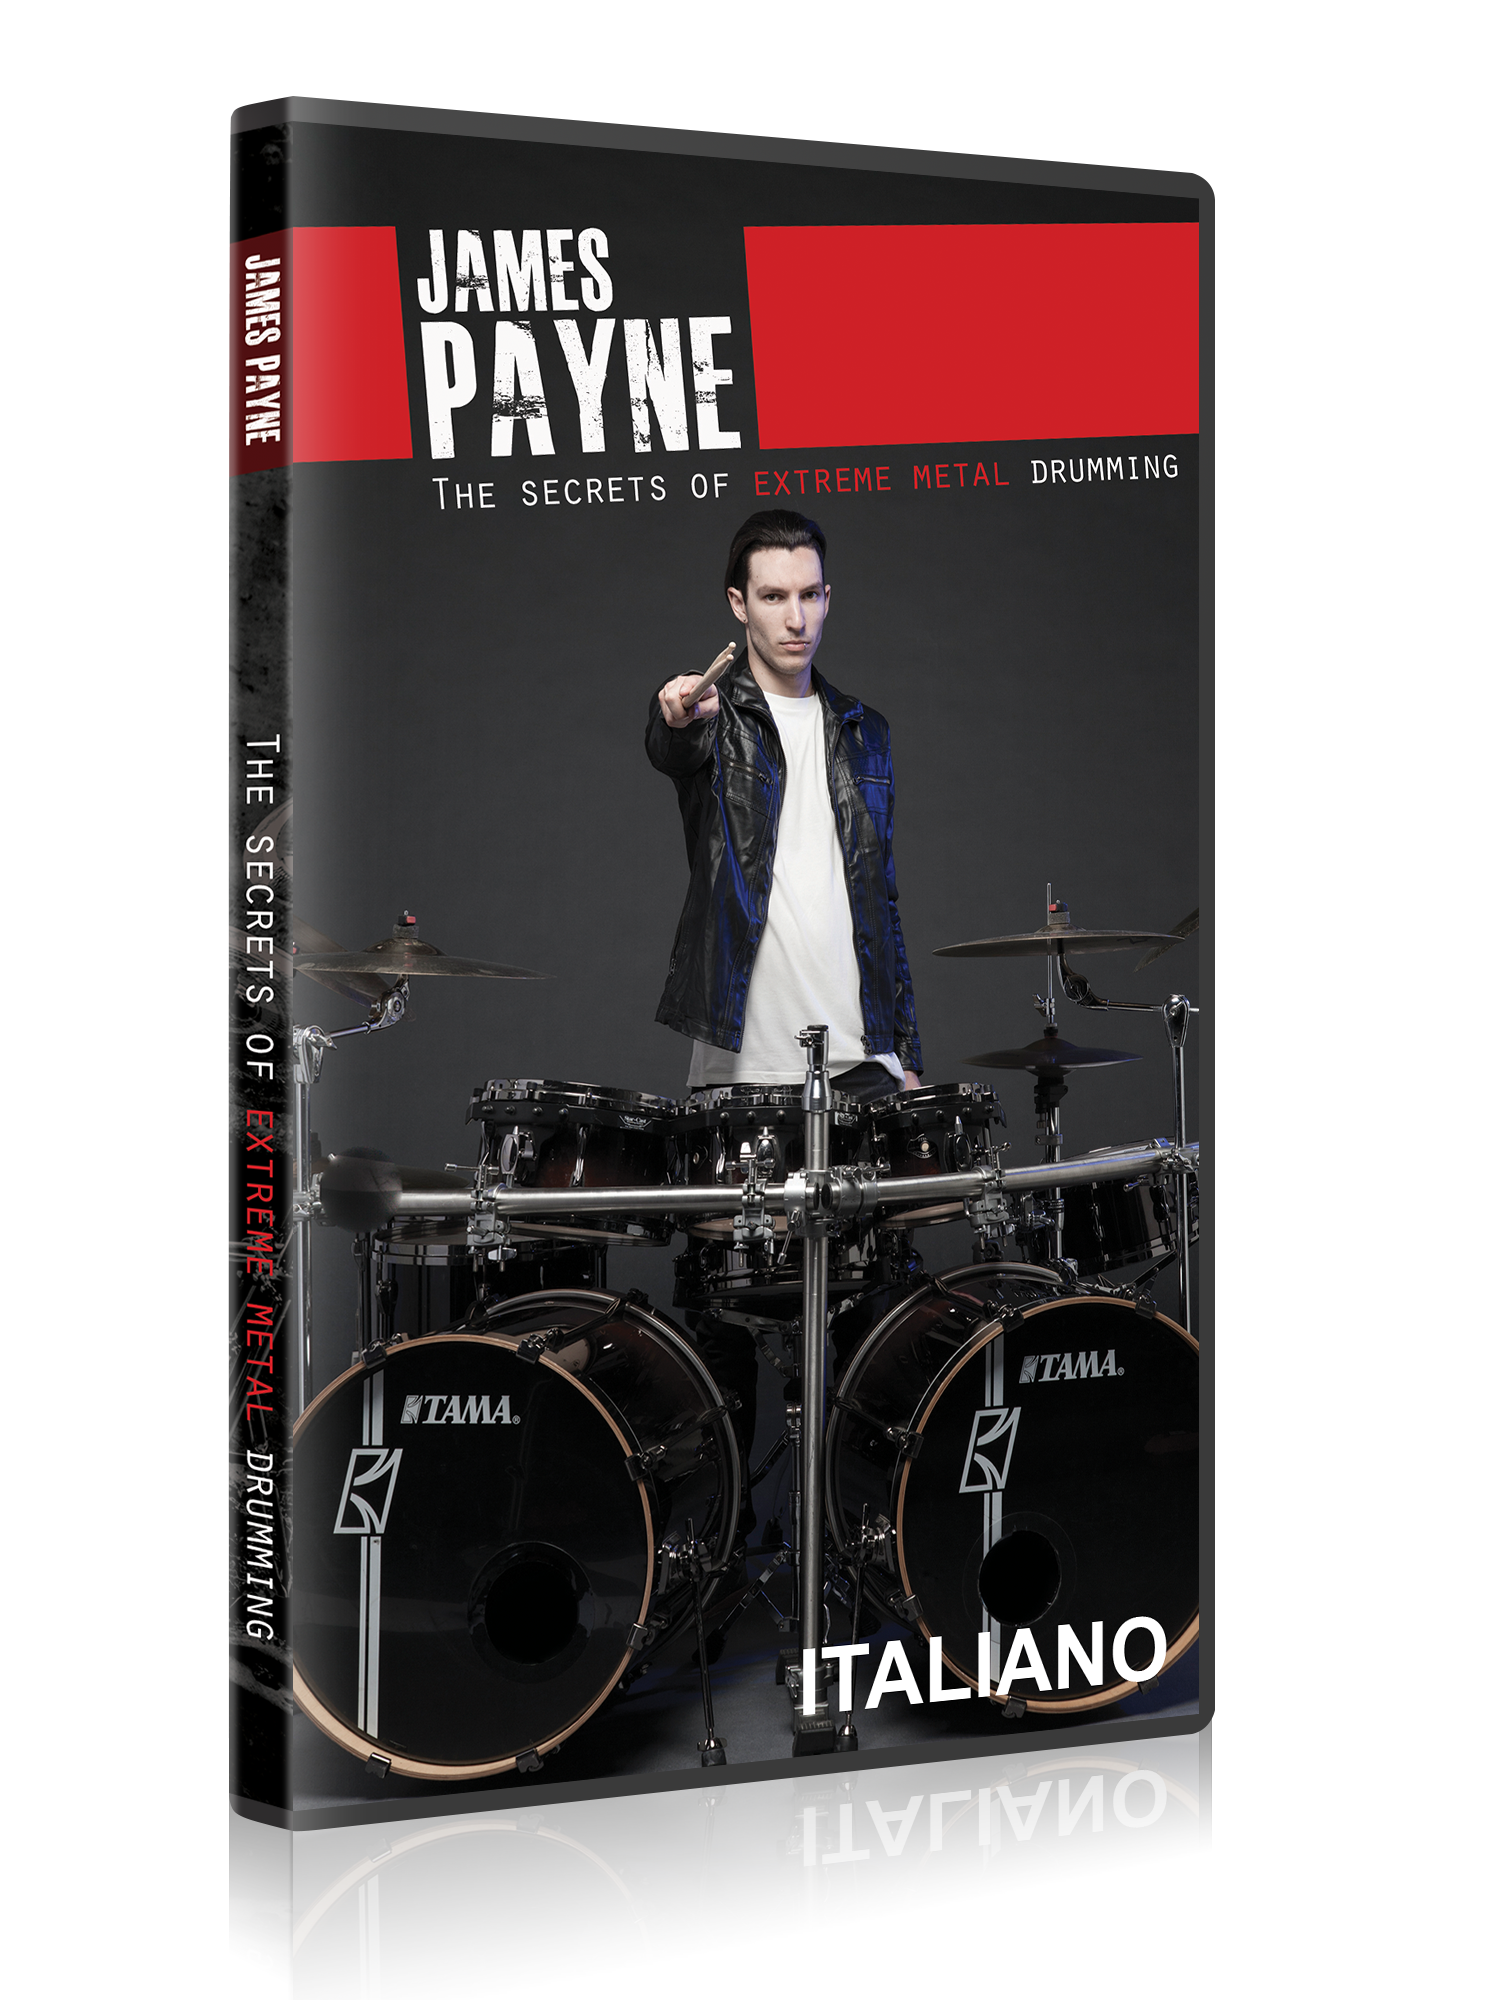 The Secrets Of Extreme Metal Drumming - DVD Streaming (ITALIANO) course image